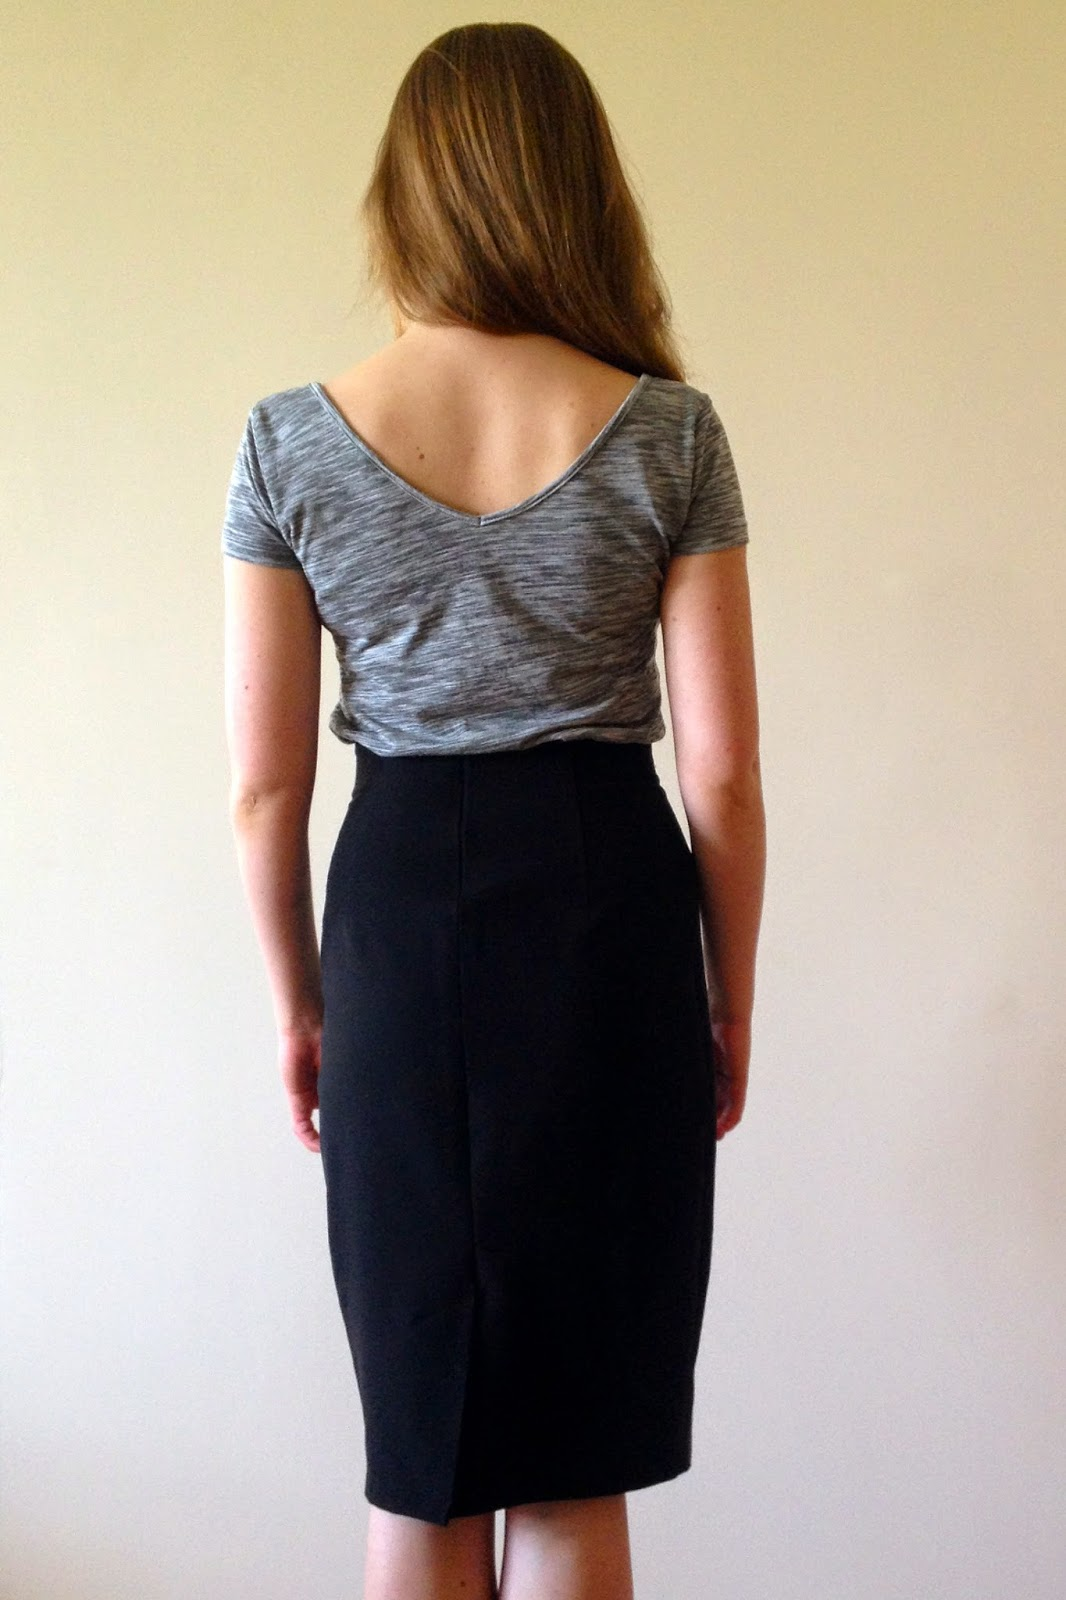 Diary of a Chain Stitcher : Two Ultimate Pencil Skirts